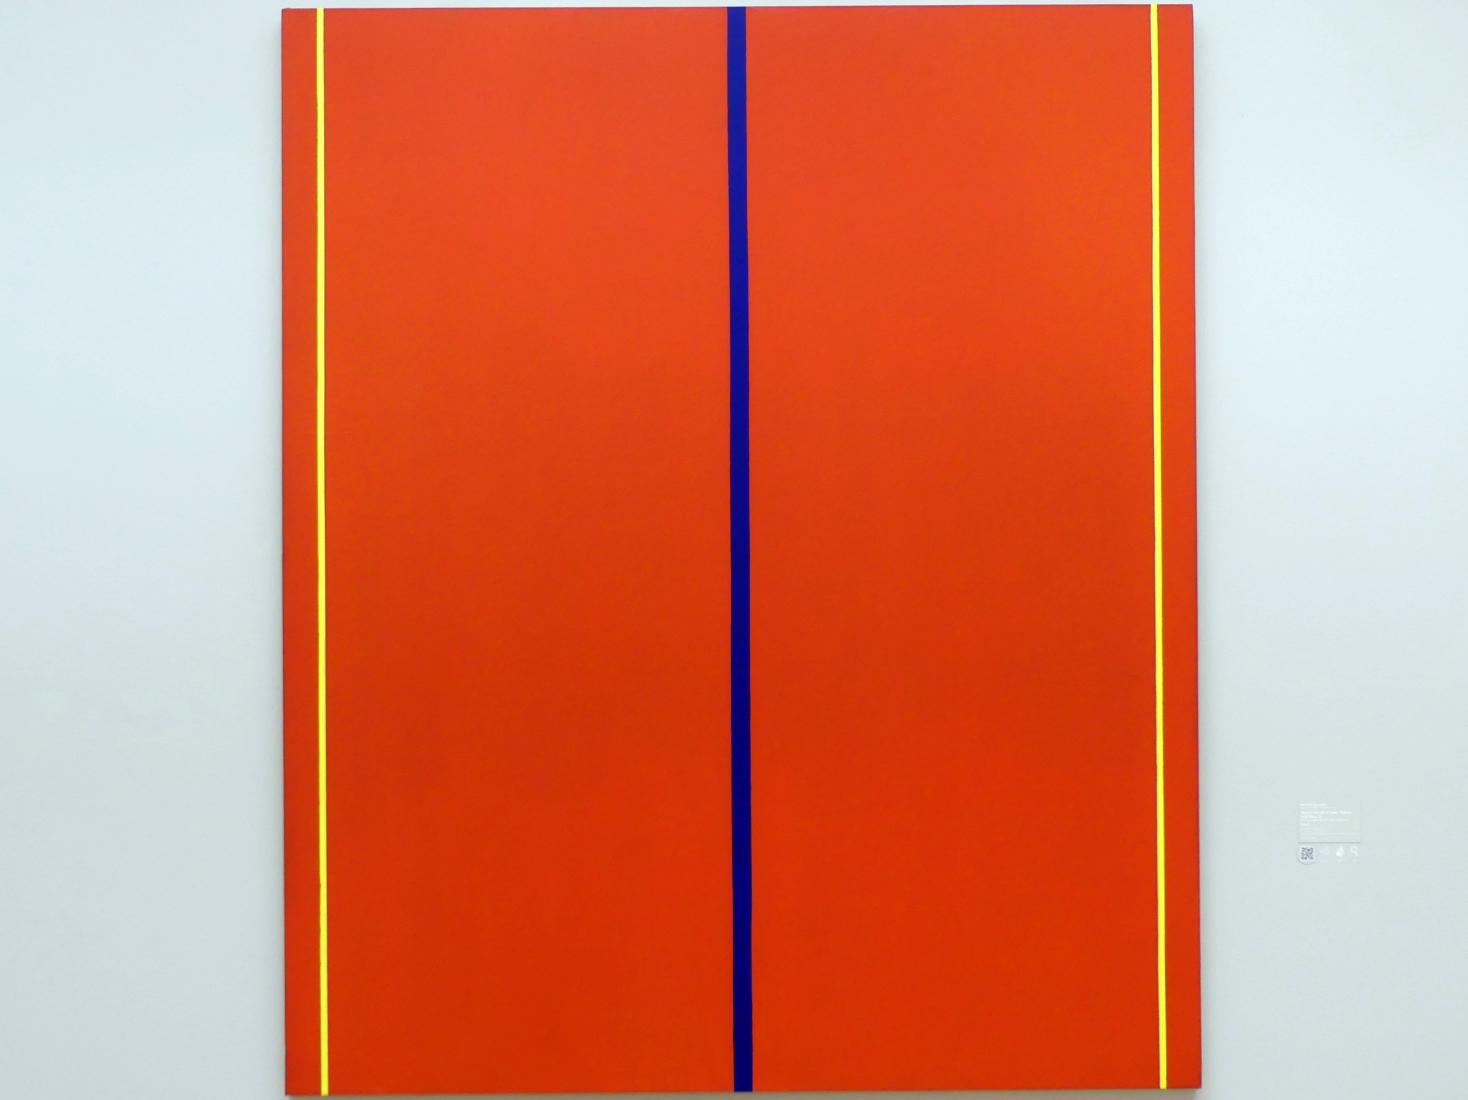 Barnett Newman: Who's Afraid of Red, Yellow and Blue II - Wer hat Angst vor Rot, Gelb und Blau II, 1967